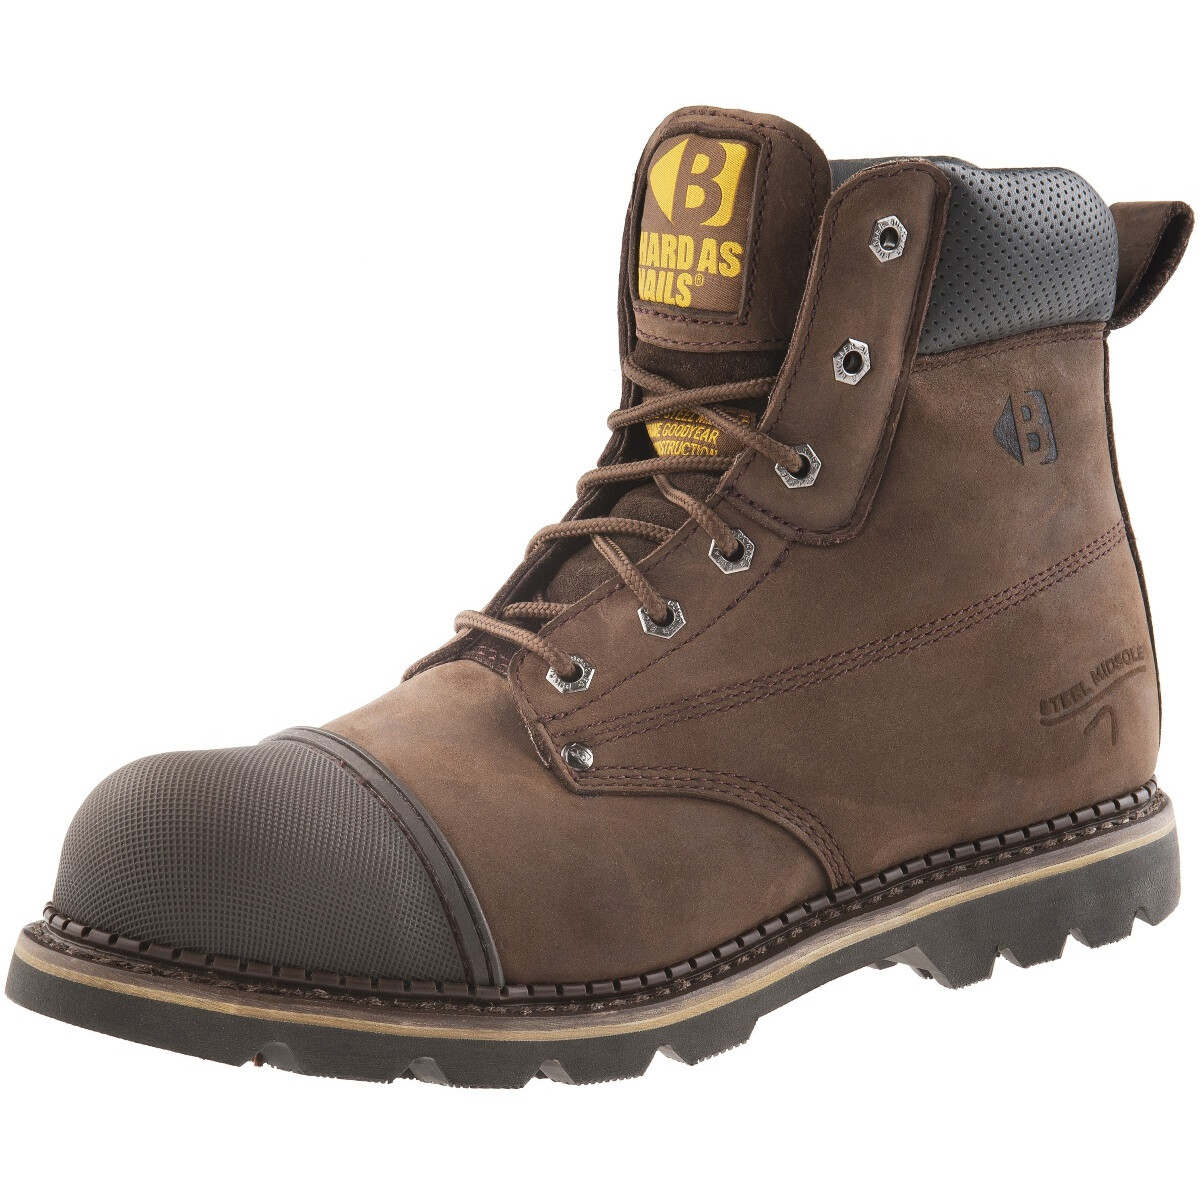 0b137ed384c Buckler Boots B301SM Brown Leather Safety Boot SB P HRO SRC